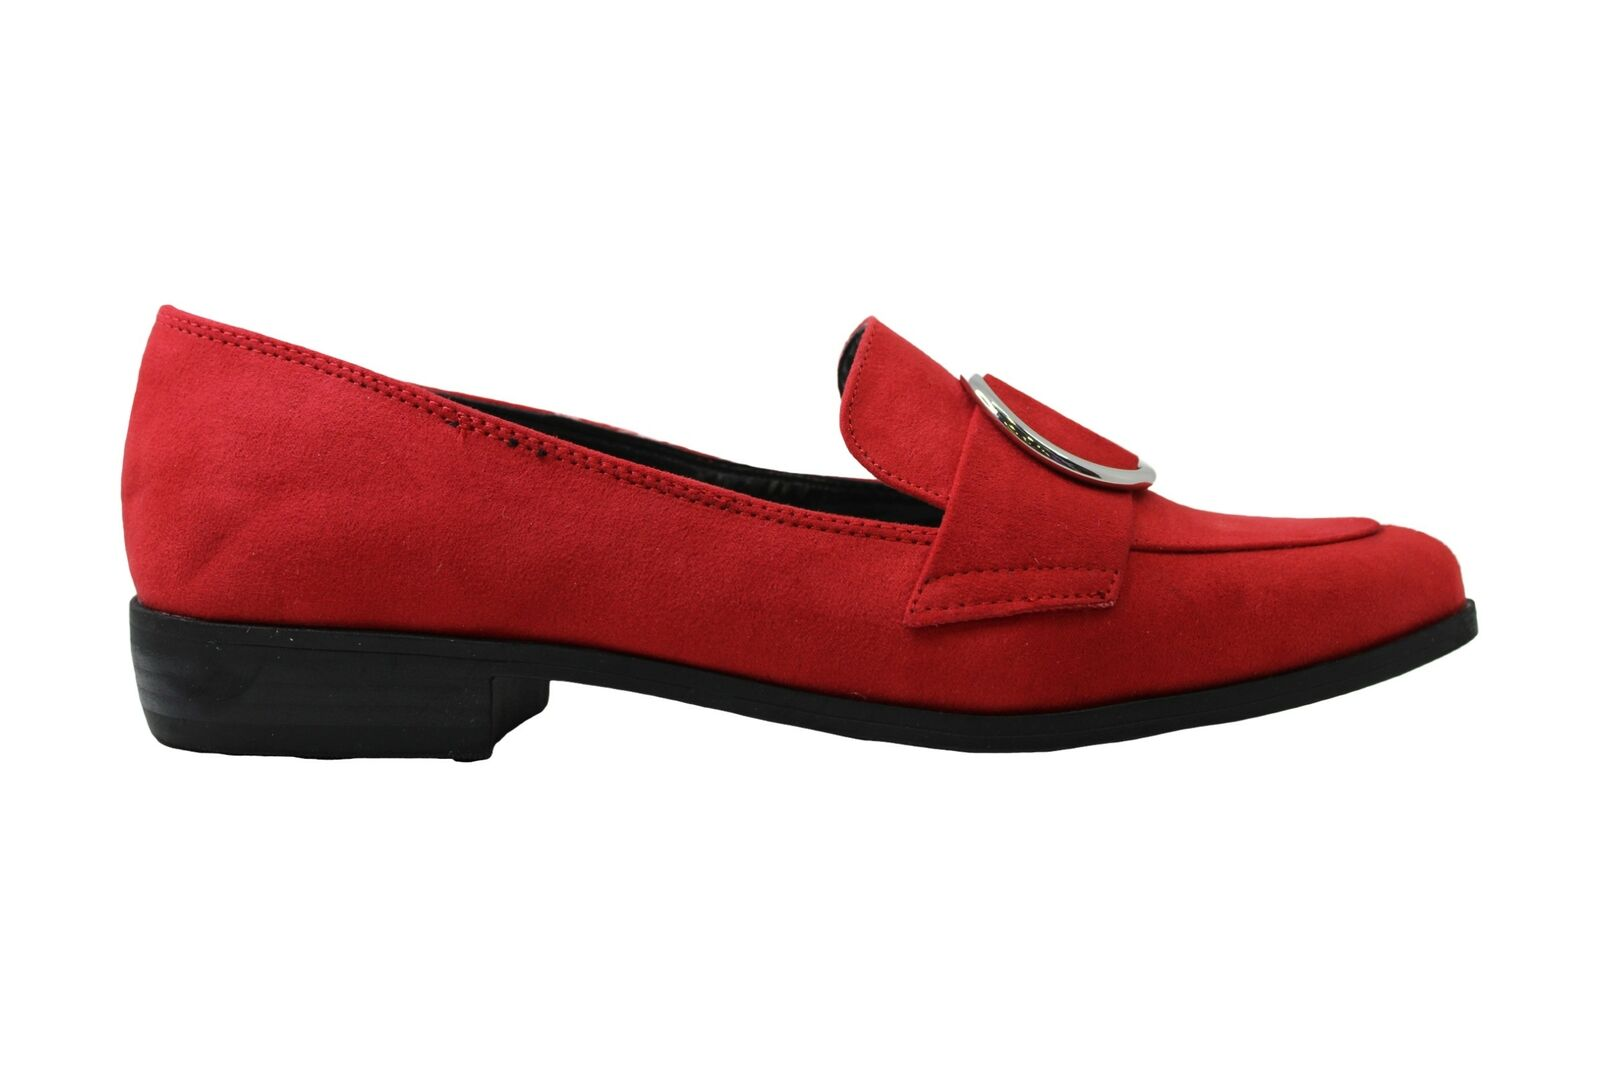 Bar III Womens Involve5 Fabric Pointed Toe Loafers, Red MC, Size 7.5 US / 5.5 UK